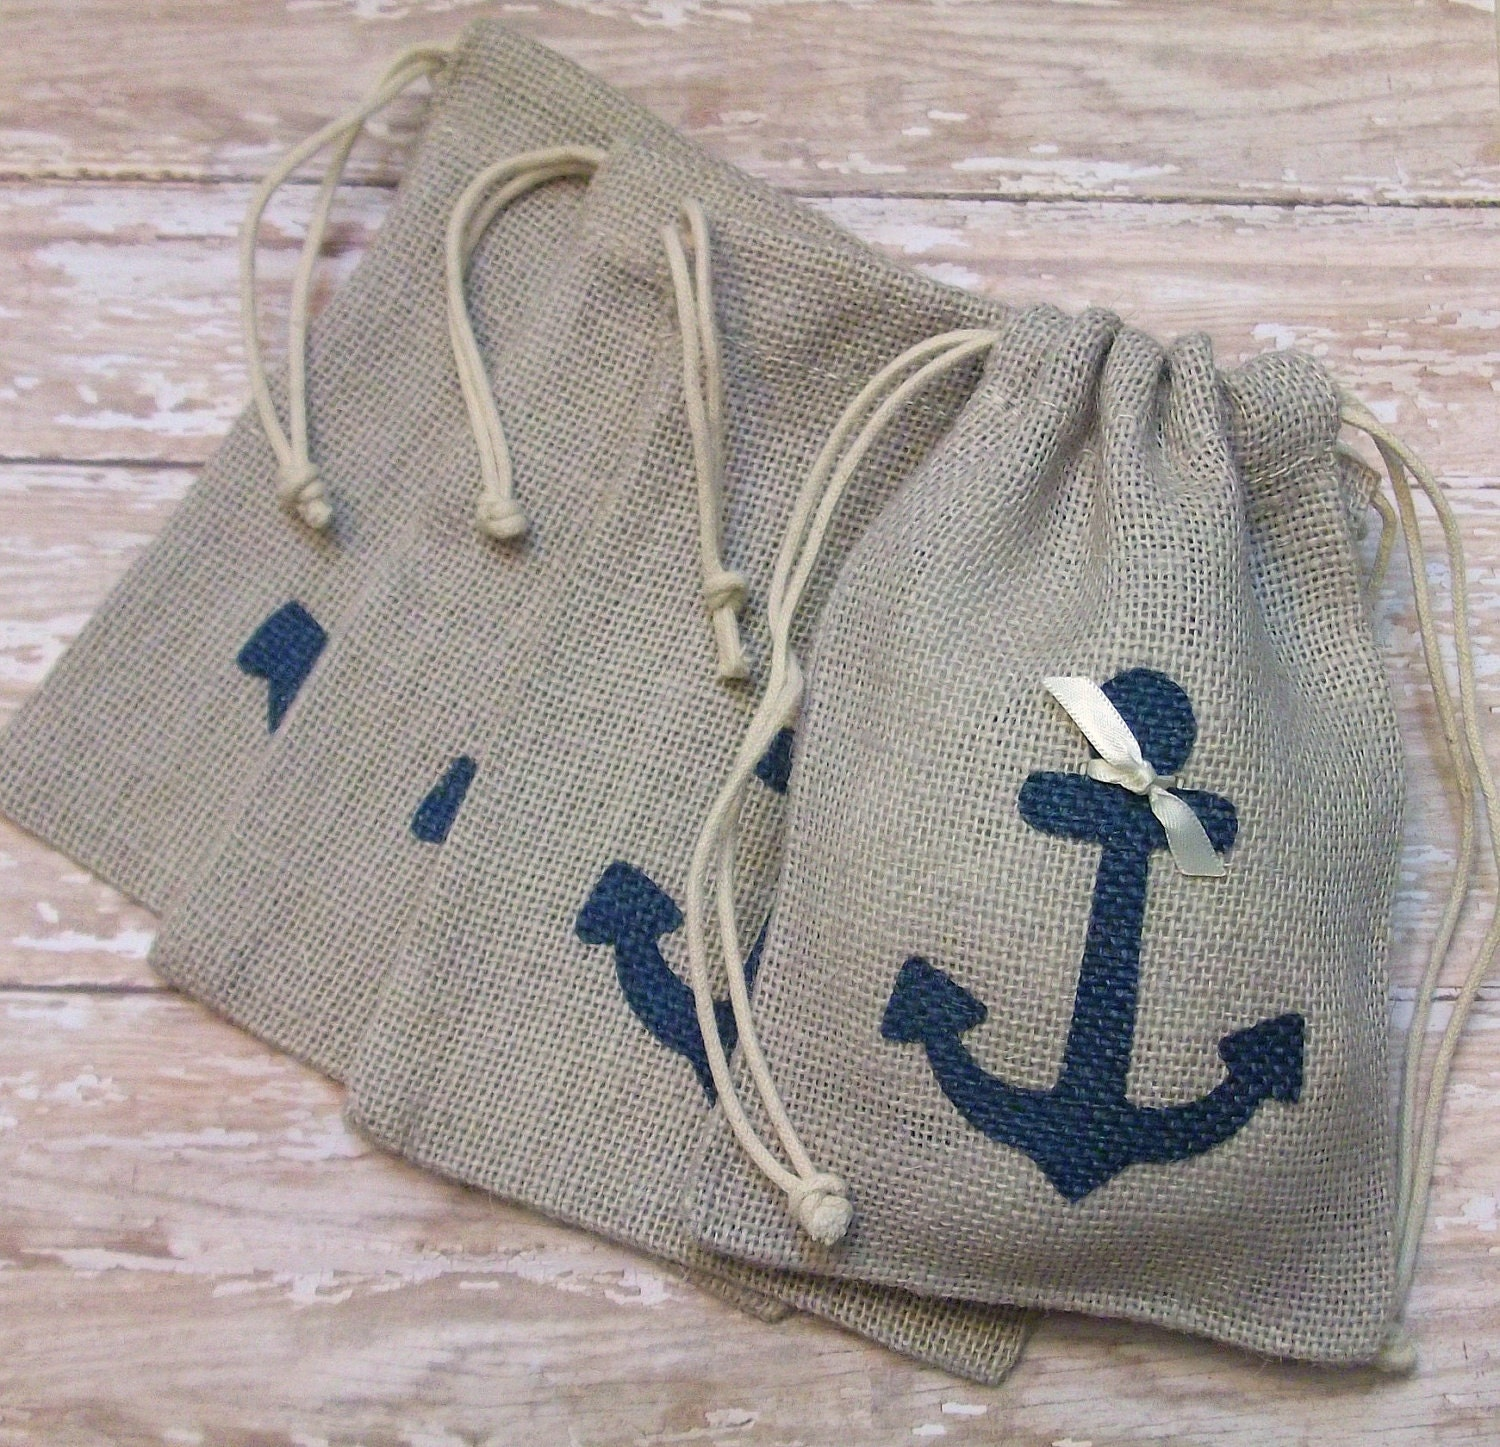 Burlap Wedding: Burlap Wedding Favors Or Gift Bags With Navy Blue Anchor